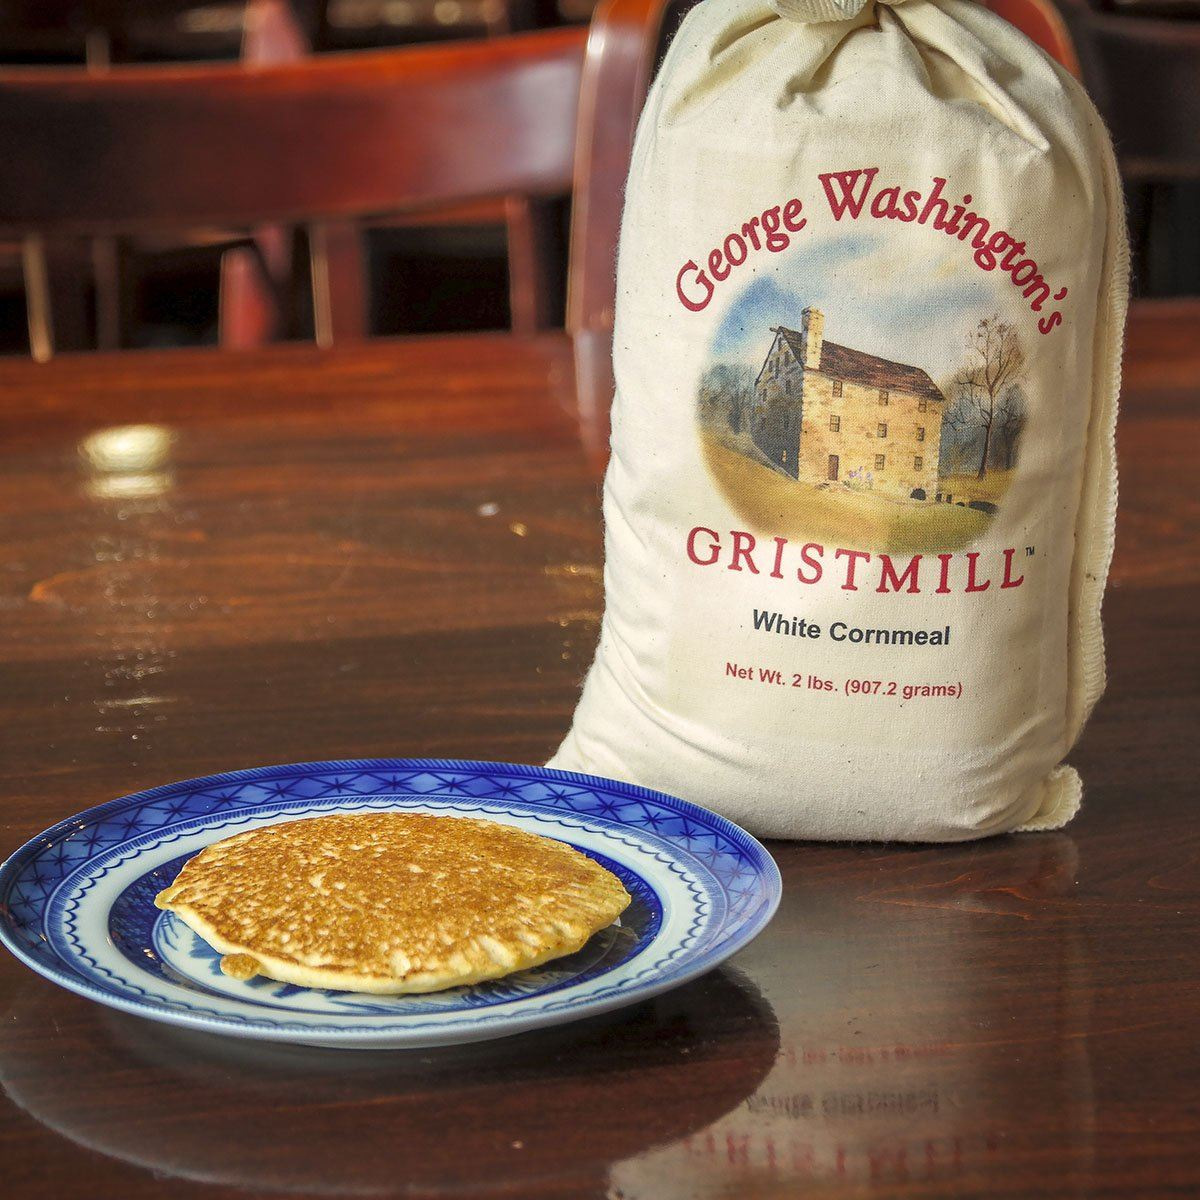 George Washington's White Cornmeal